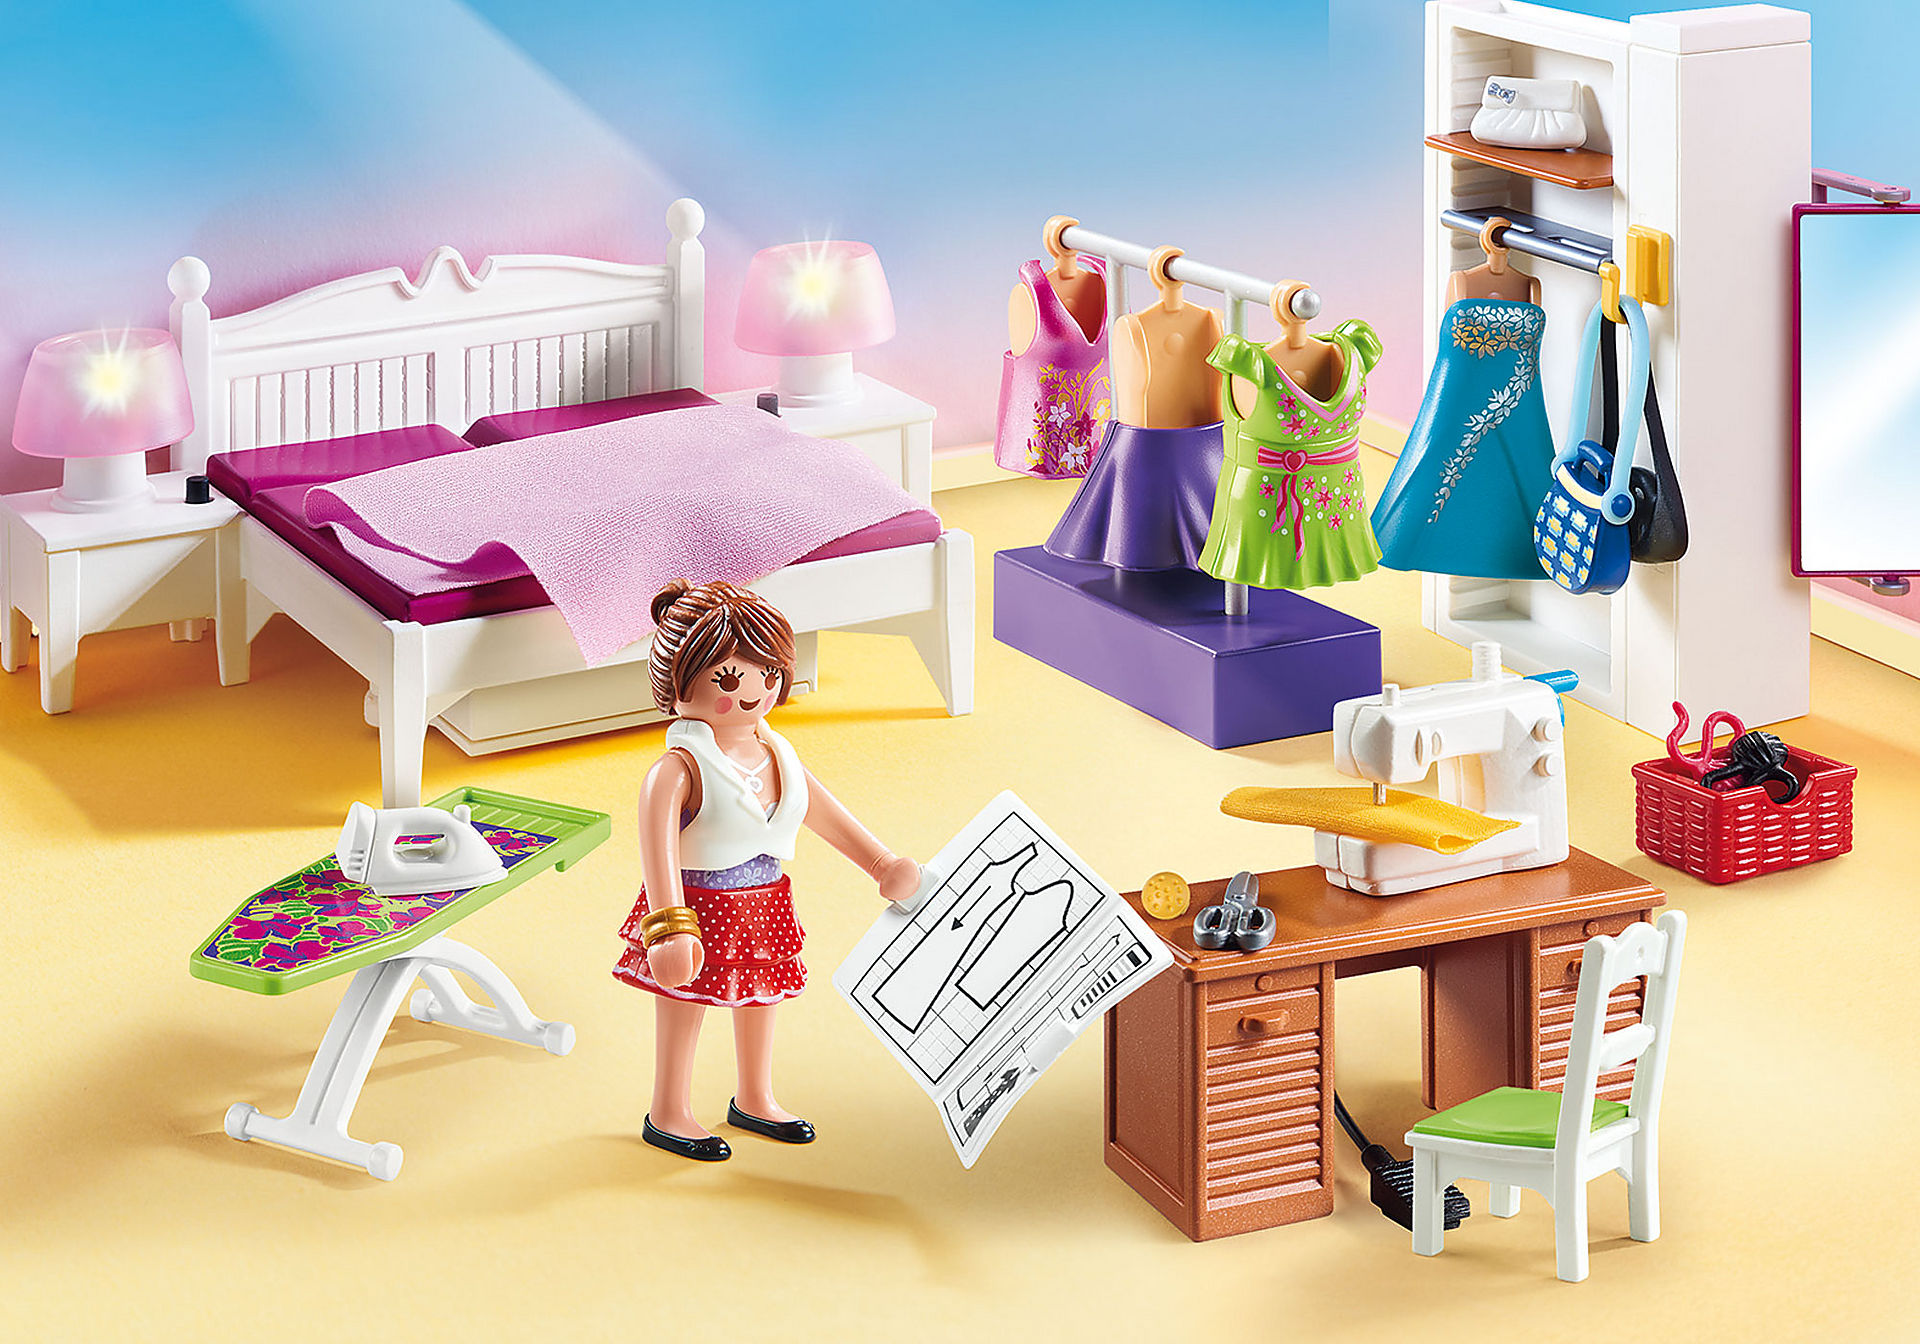 http://media.playmobil.com/i/playmobil/70208_product_detail/Camera da letto con angolo per cucito